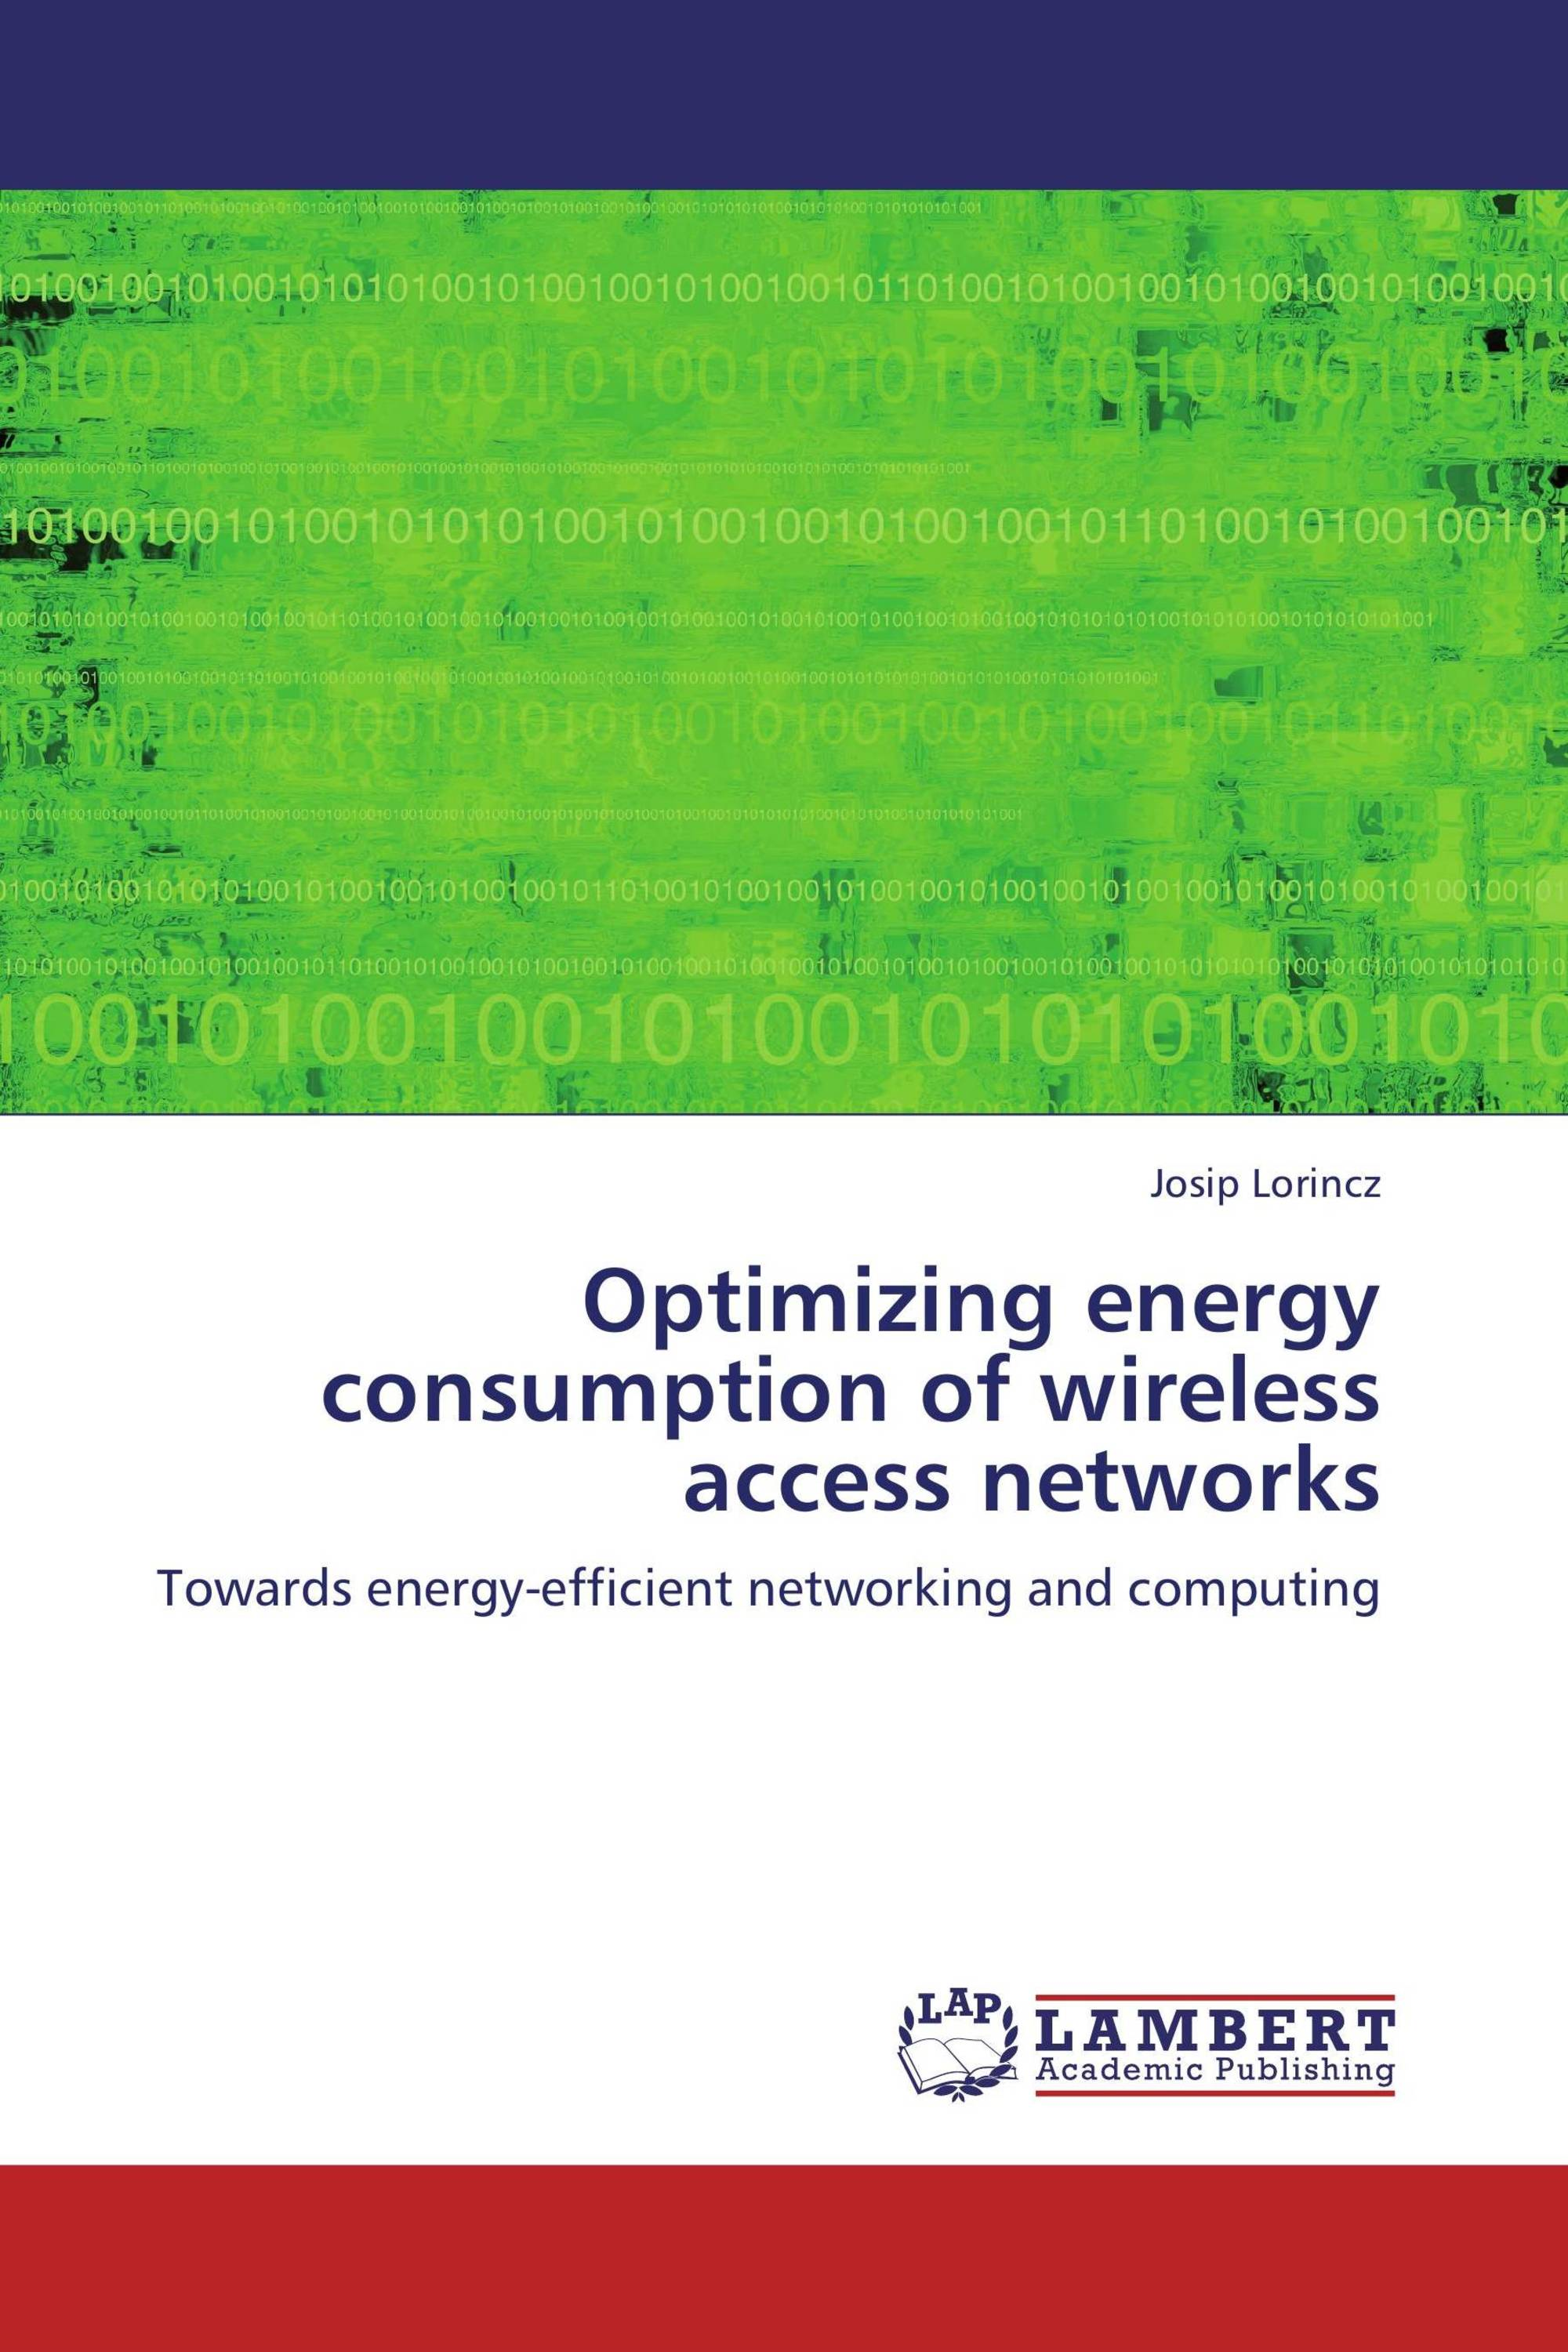 Optimizing energy consumption of wireless access networks